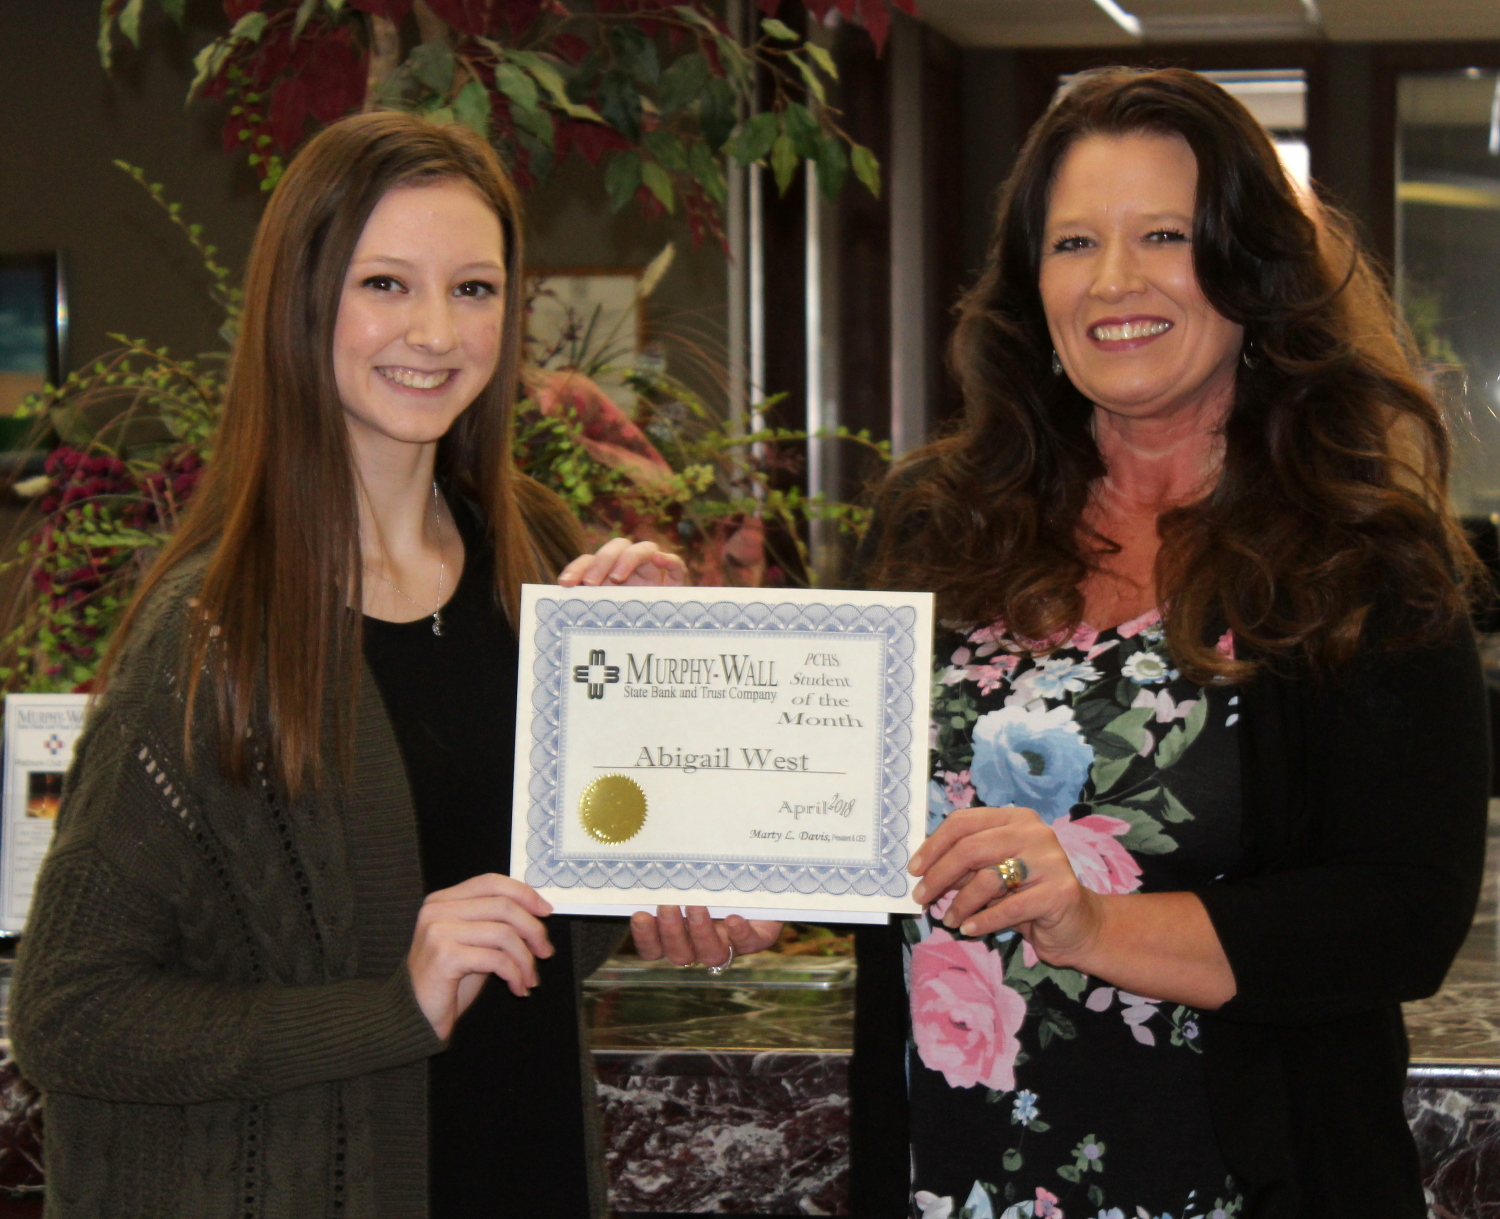 Murphy-Wall State Bank and Trust Company employee Candice Knight give PCHS student Abigail West the 2018 April Student of the Month award